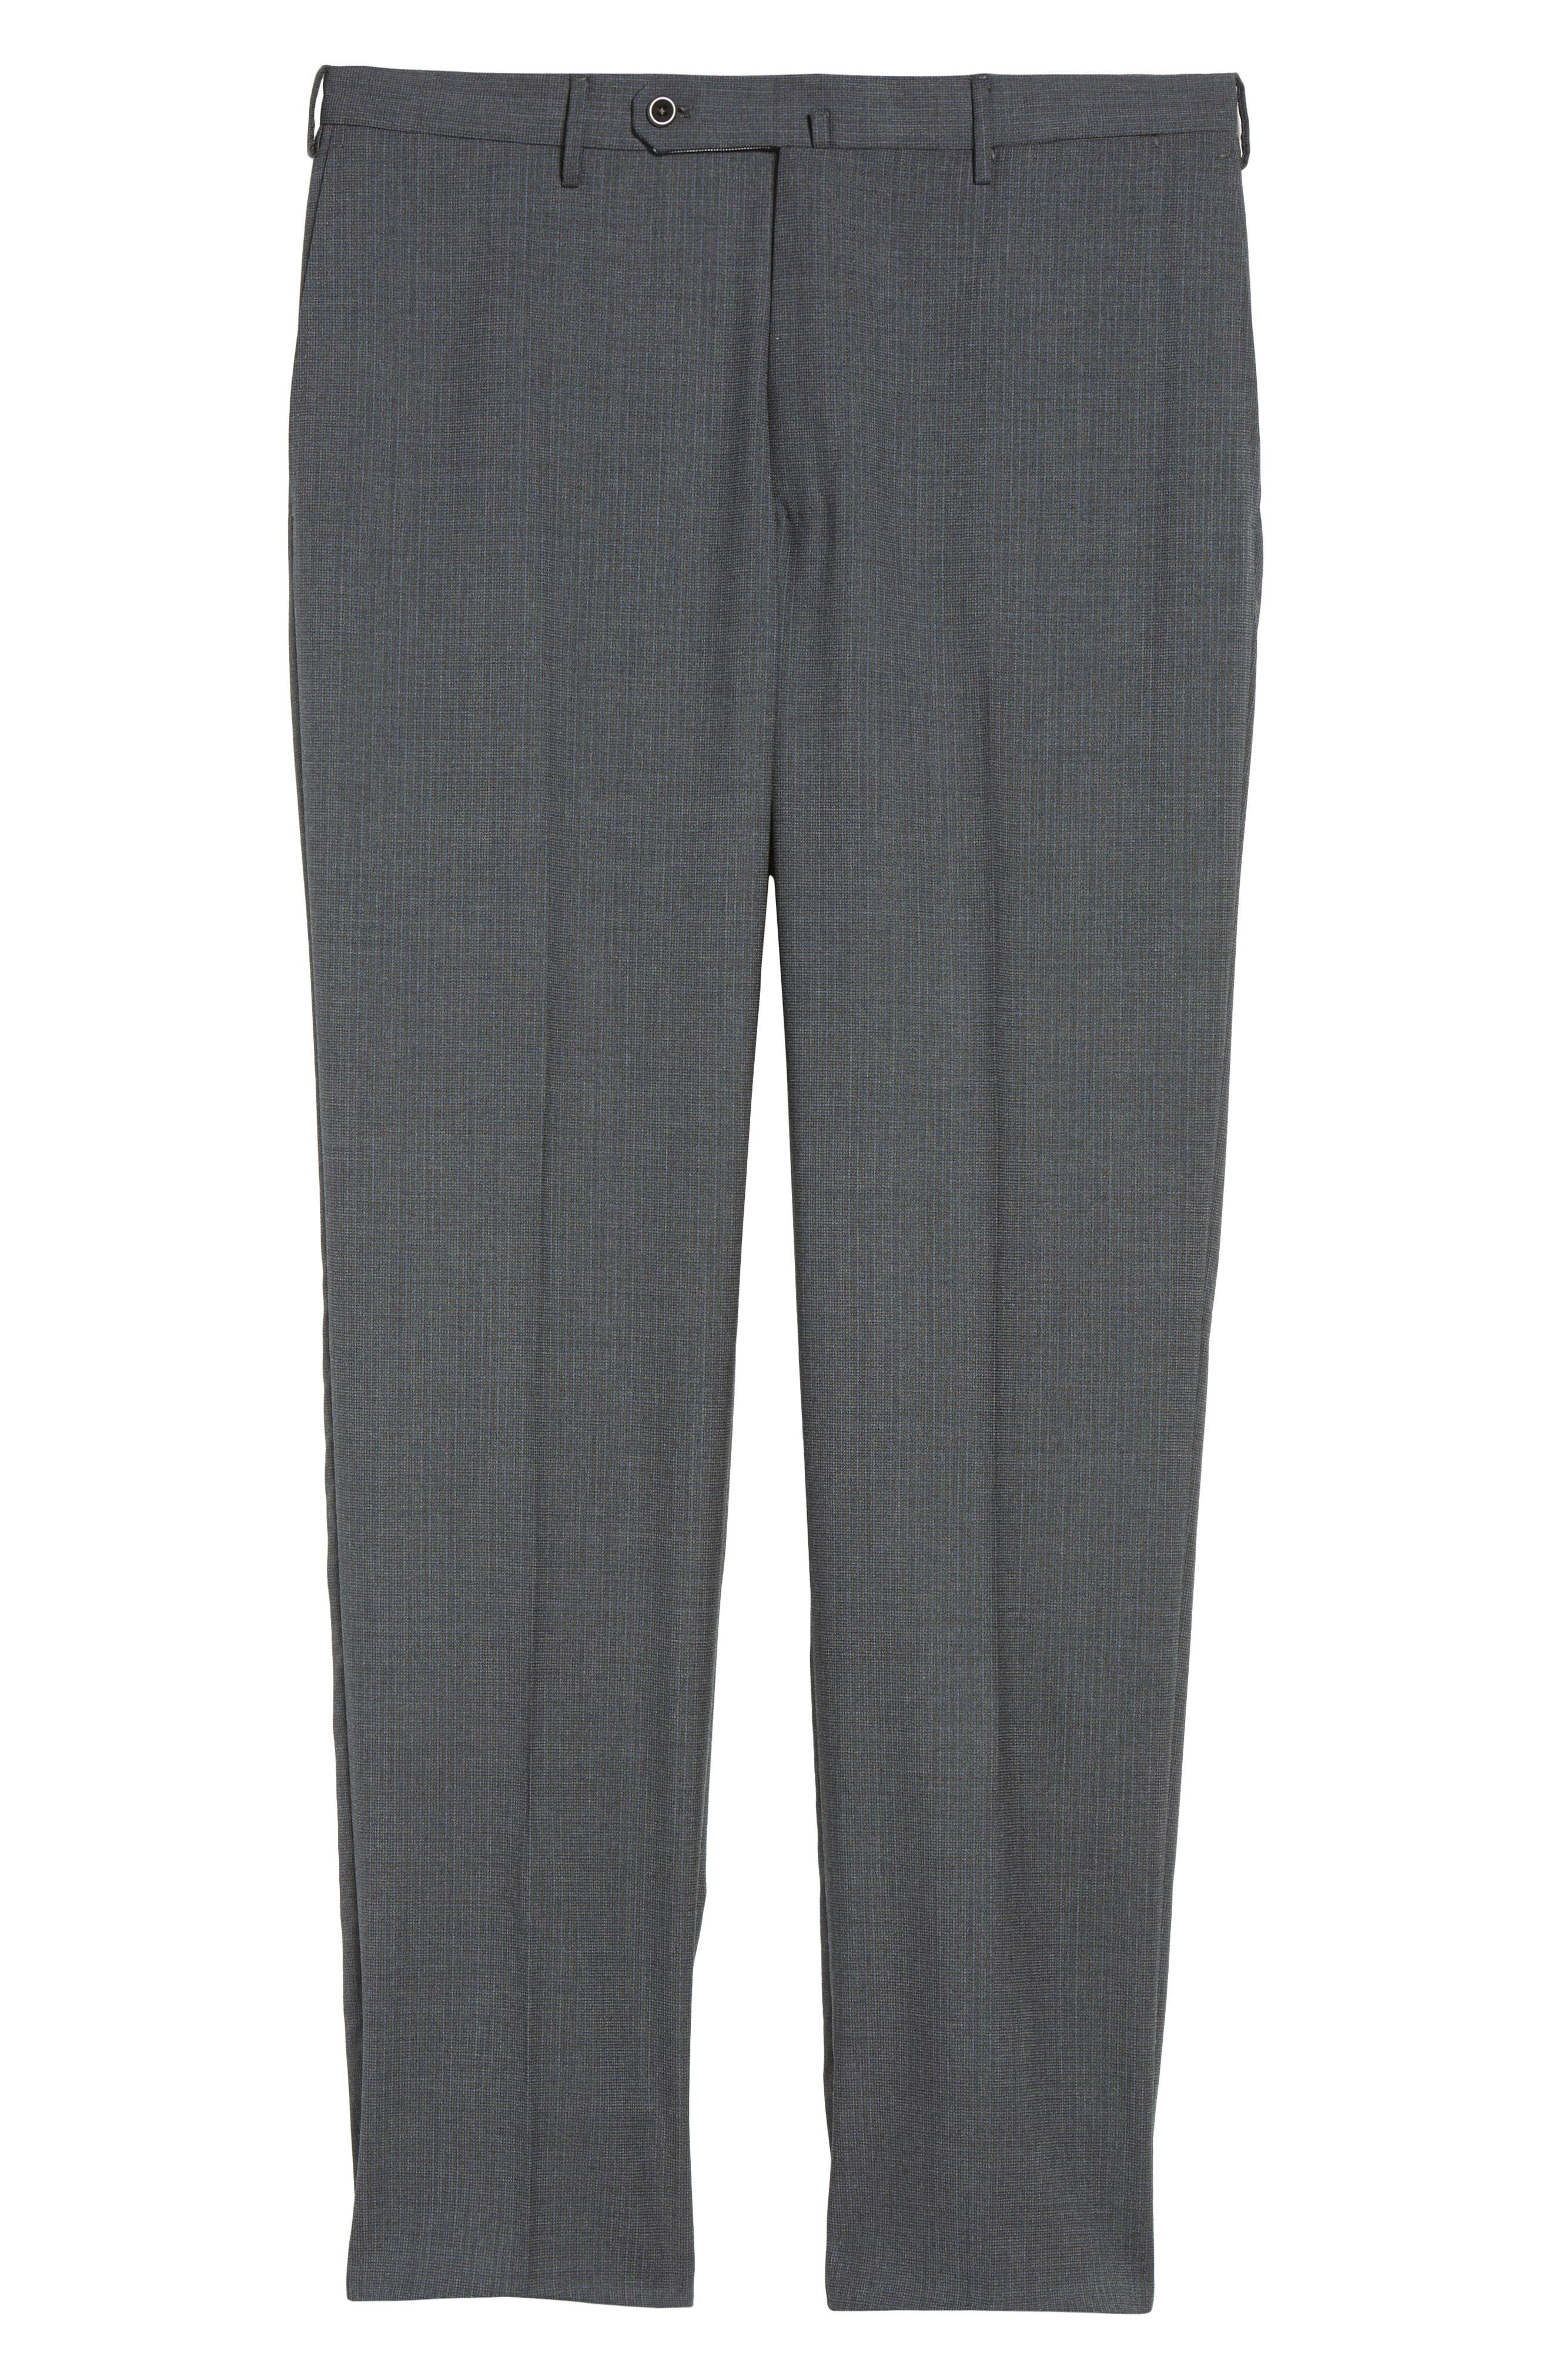 Benson Flat Front Wool Trousers,                             Alternate thumbnail 6, color,                             015